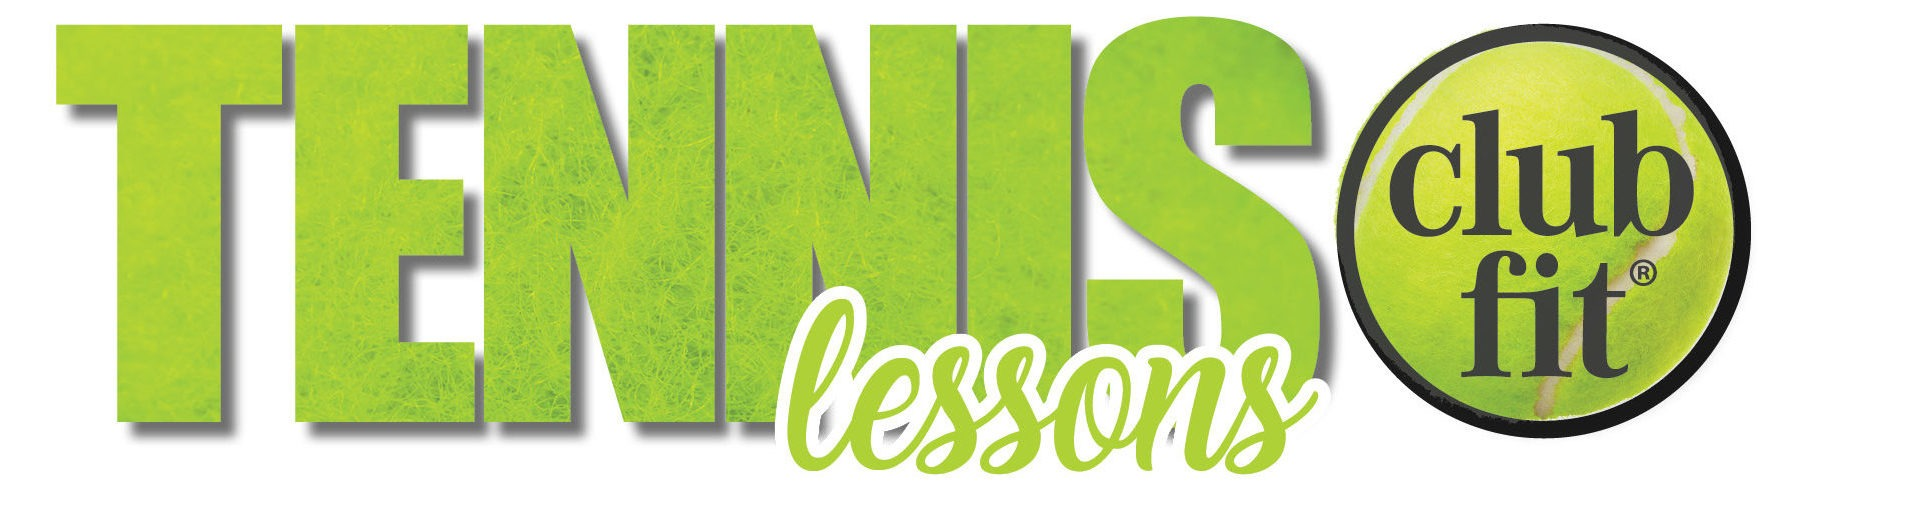 tennisLessons e1506541900193 - Private & Semi-Private Lessons